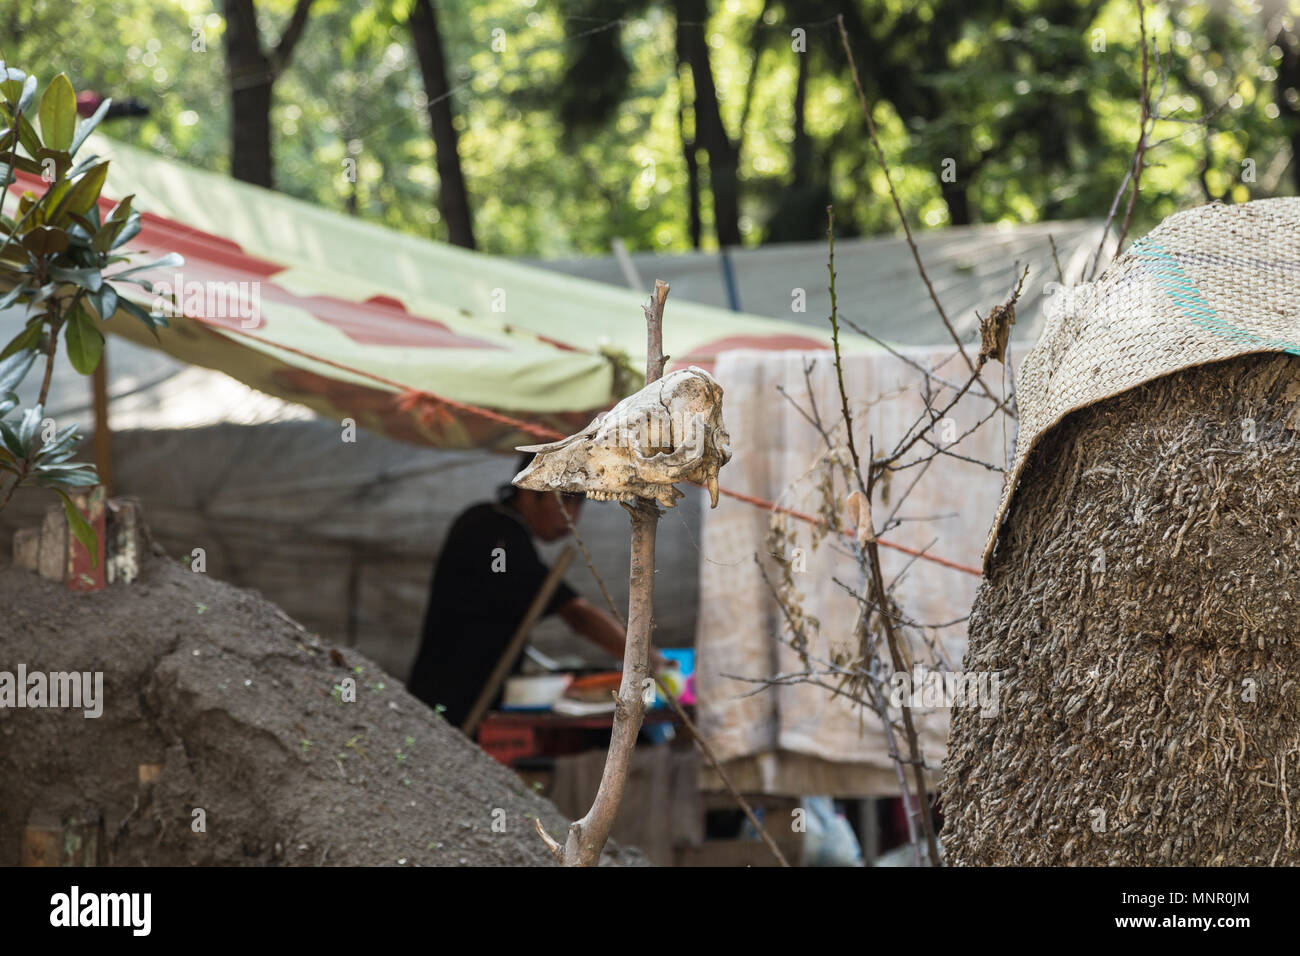 Iguala missing students case activist camp site with an animal skull being staked on the dirt mound on the front, Mexico City, Mexico. - Stock Image